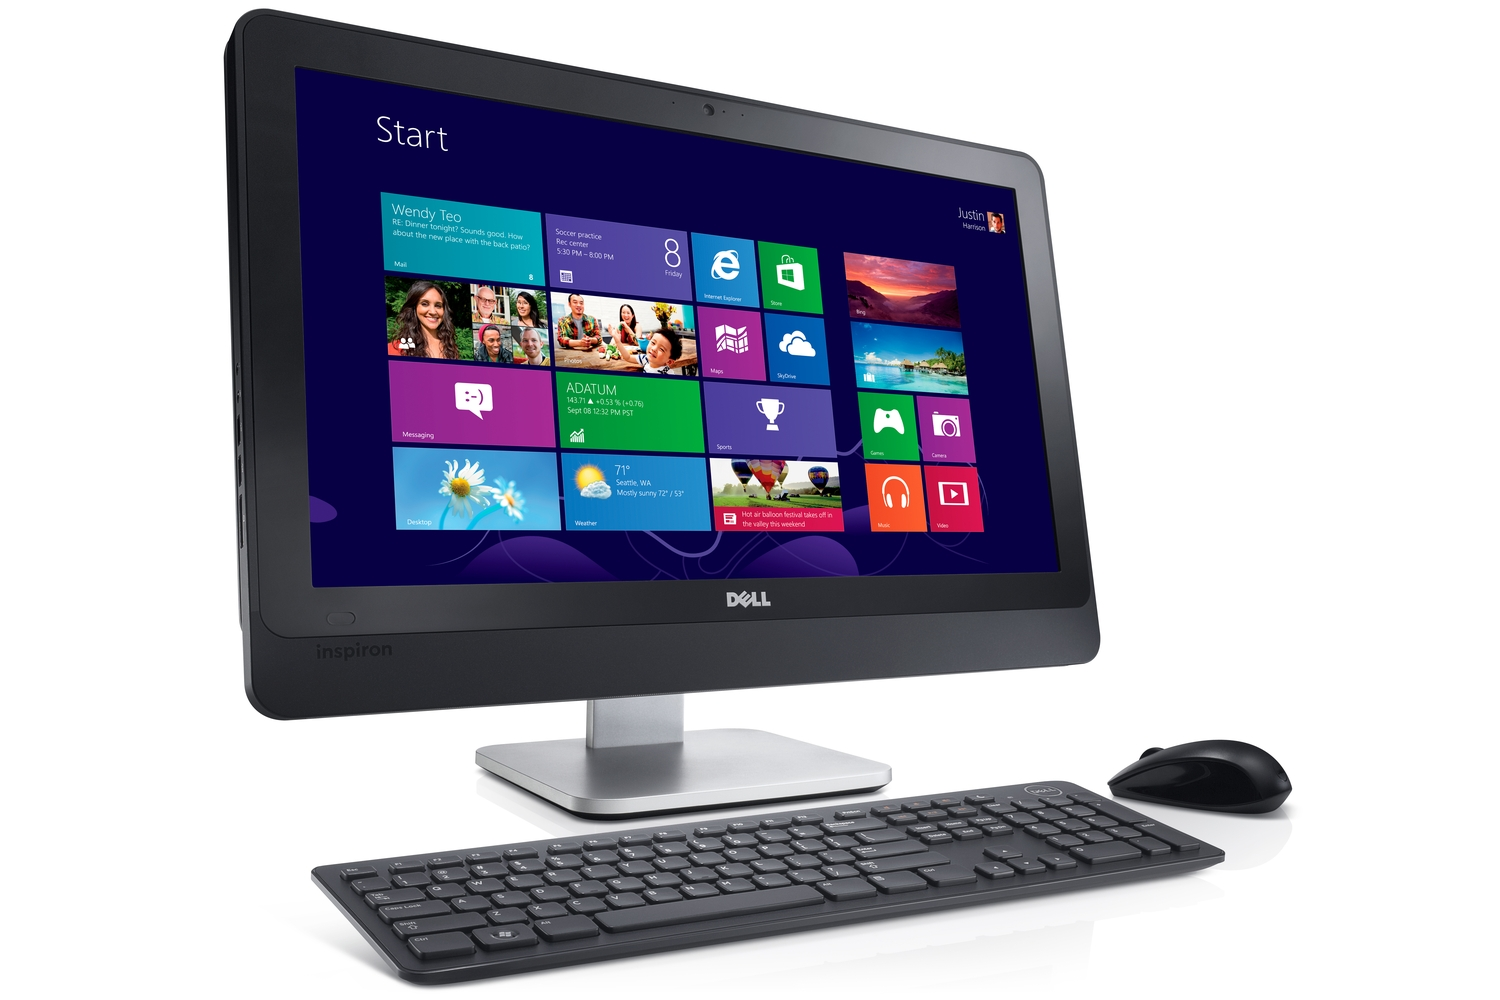 Dell Inspiron One 2330 Review: Dell's newest all-in-one PC continues to  challenge Apple on design, and beat it on price - Brand Centre - Dell - PC  World ...